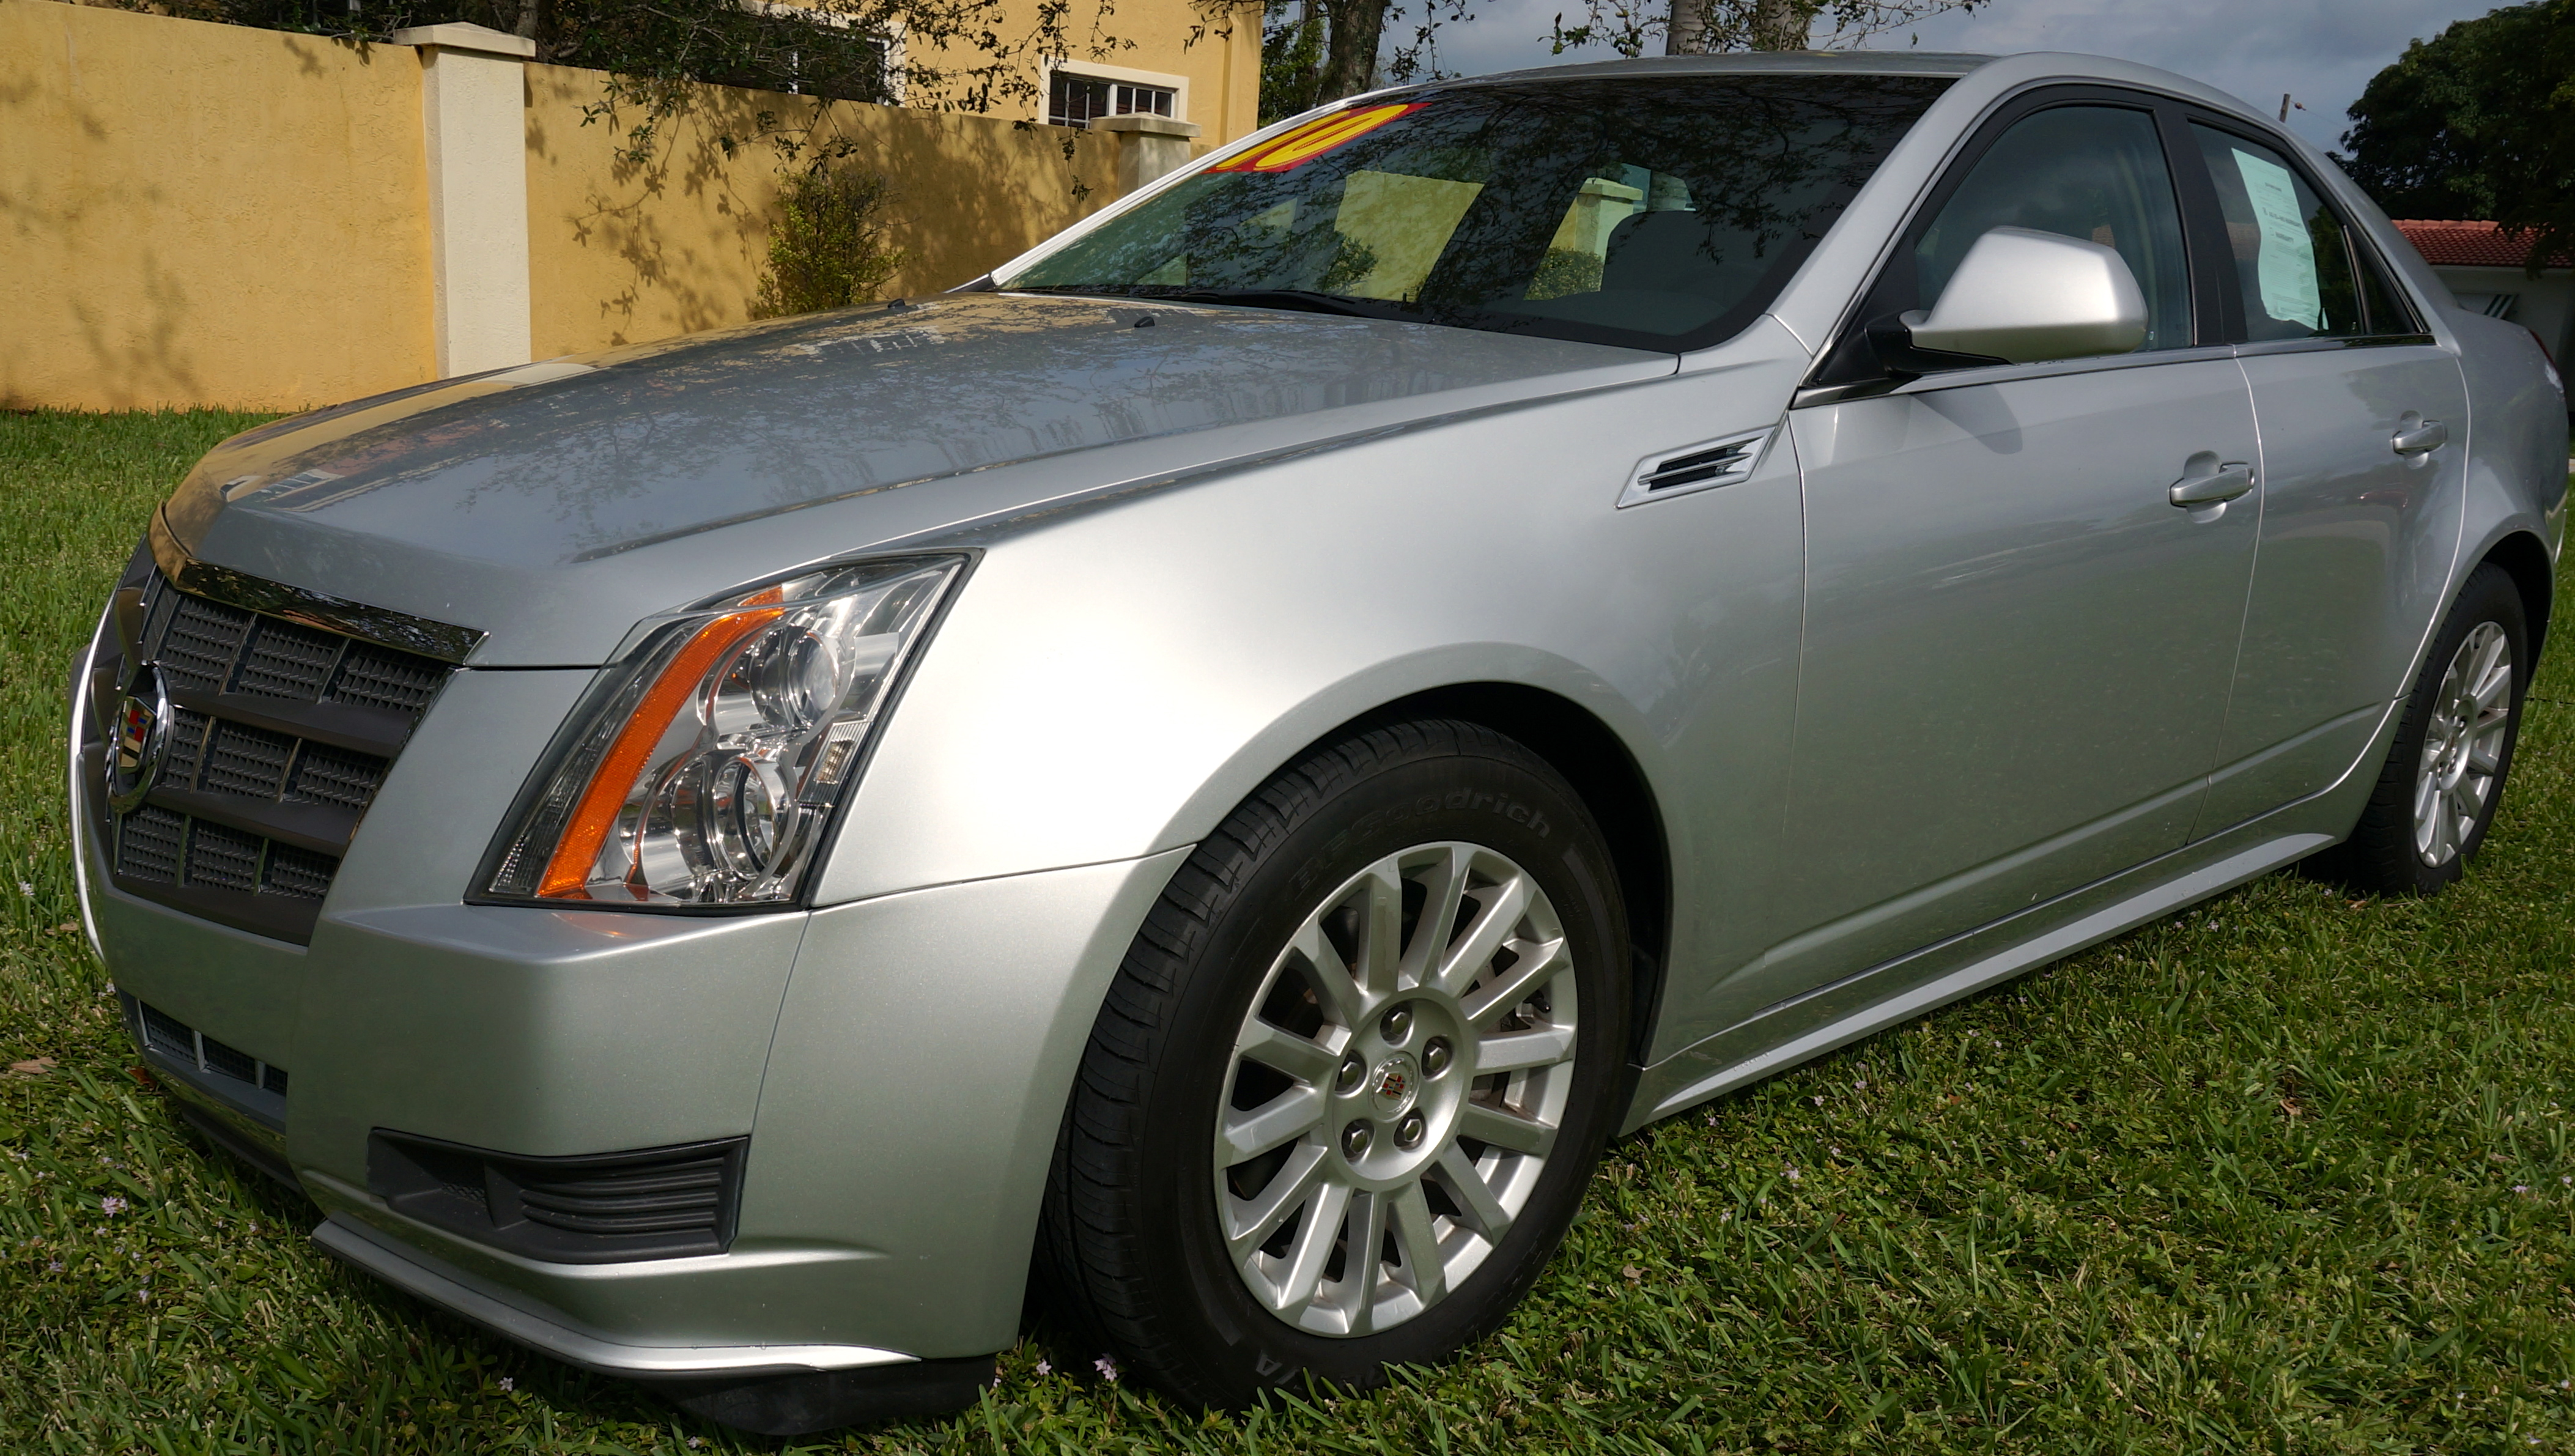 Imperial Capital Cars image 6